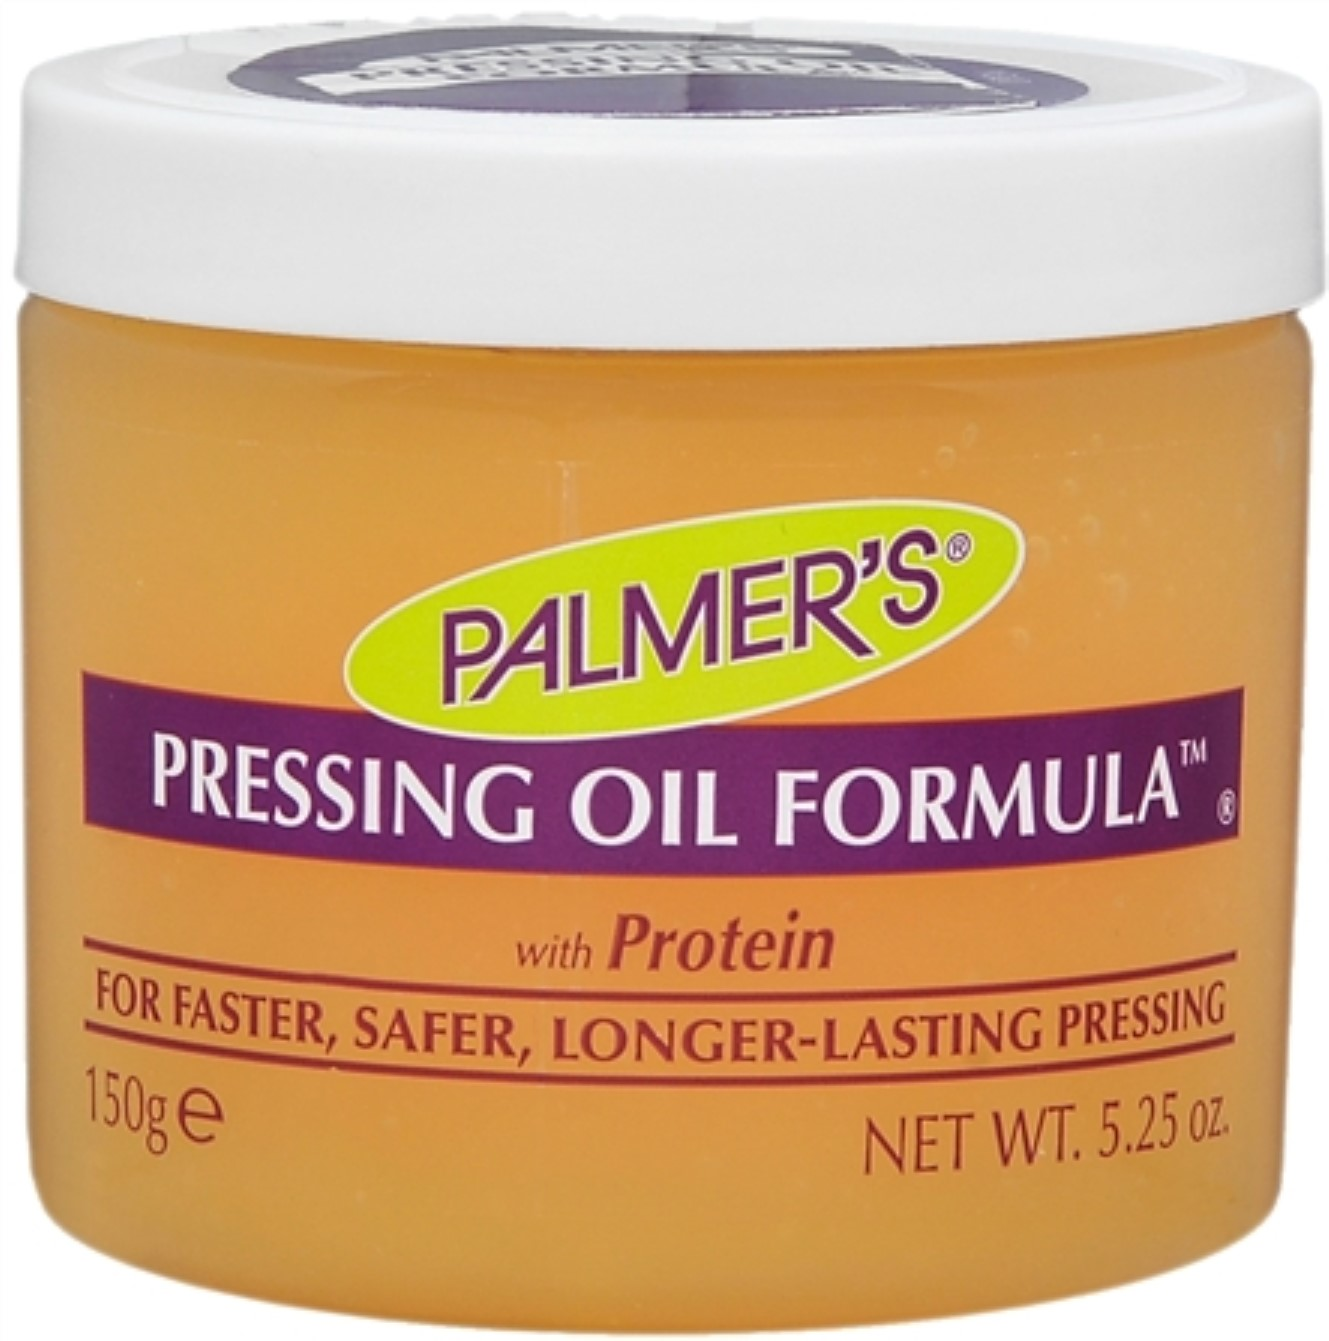 Palmer's Pressing Oil Formula With Protein 5.25 oz